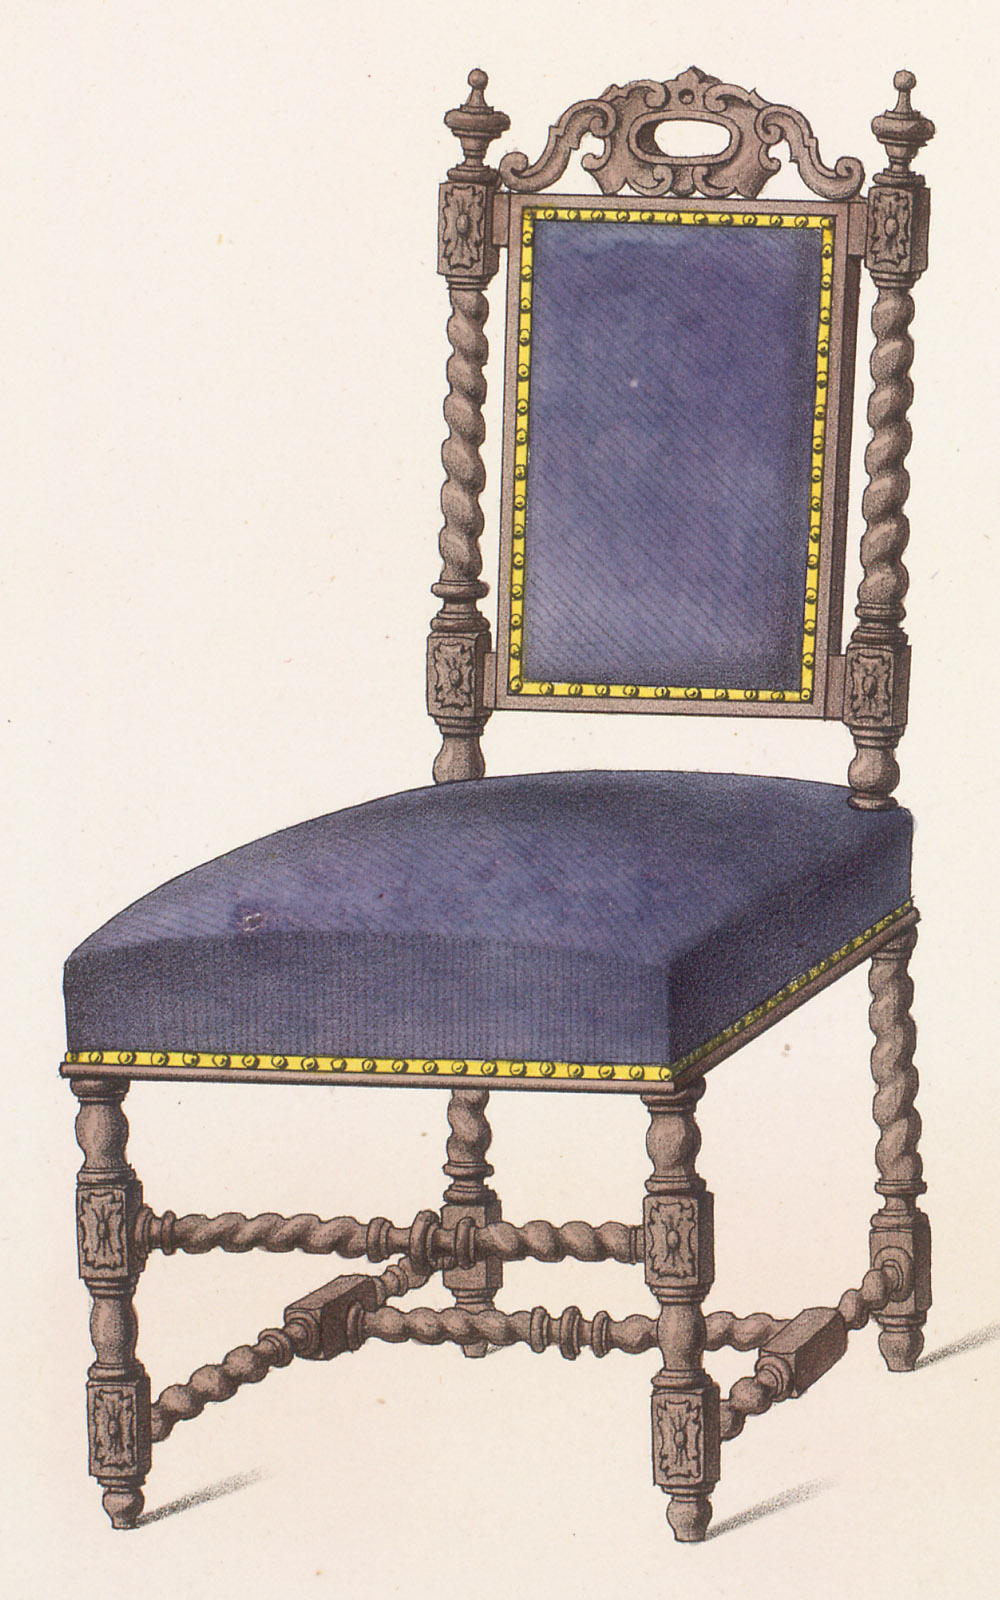 FileChair Louis XIII style 04.jpg & File:Chair Louis XIII style 04.jpg - Wiktionary